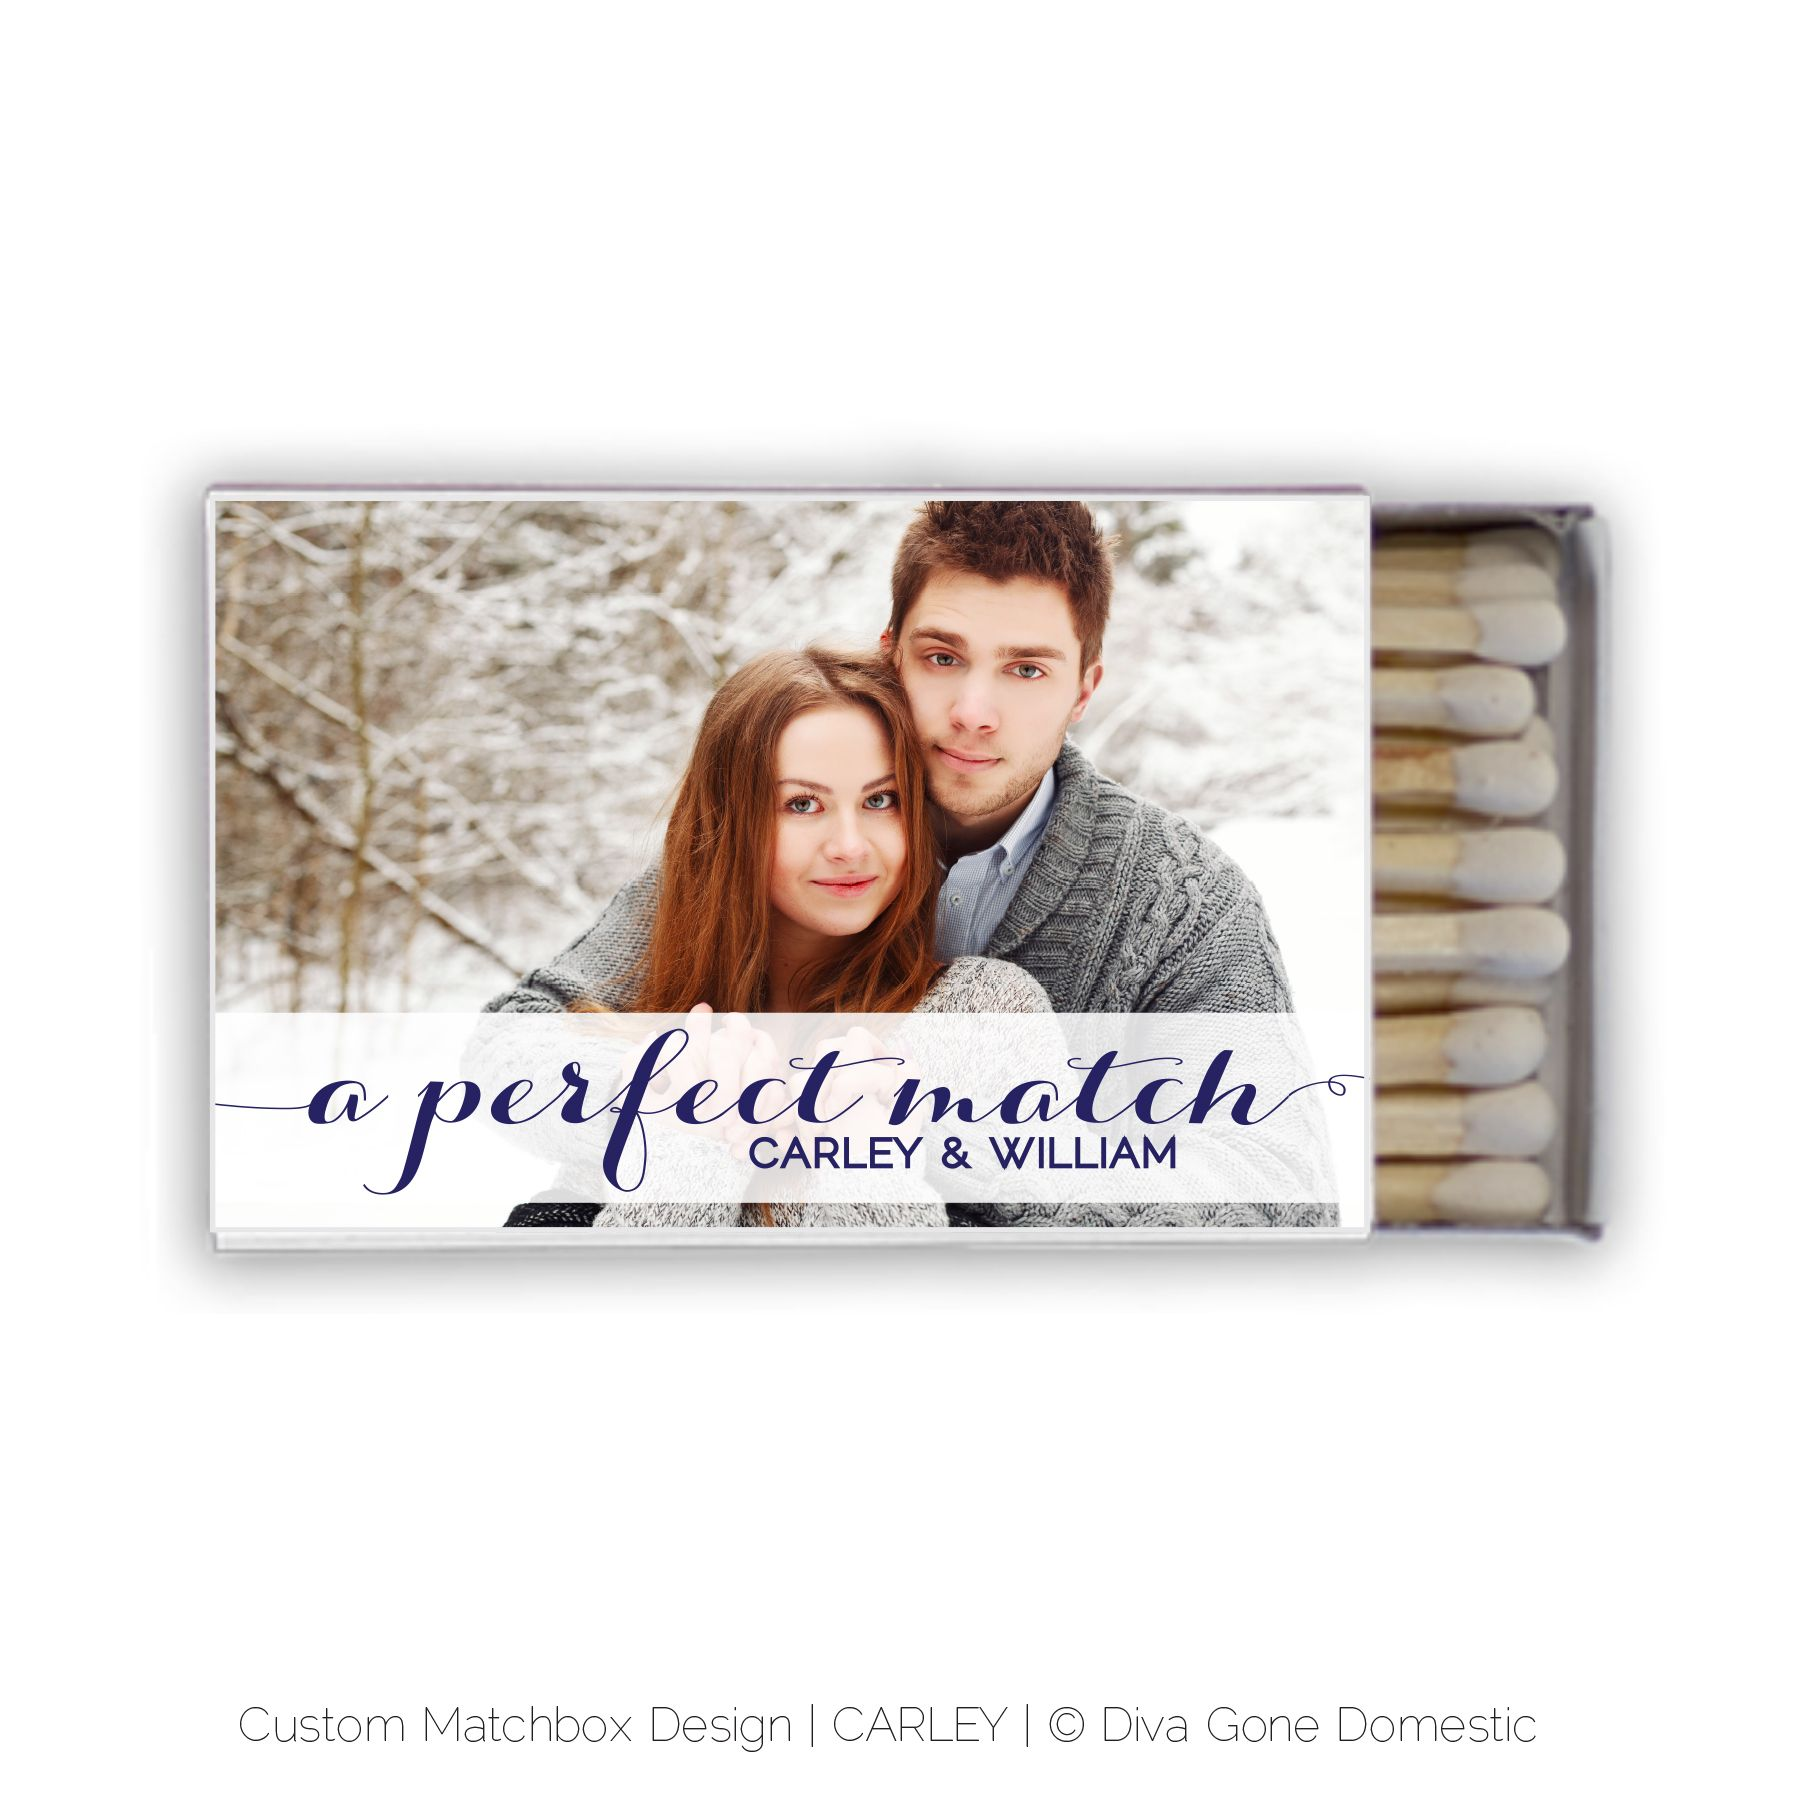 Outstanding Matchboxes For Wedding Favors Photo - The Wedding Ideas ...